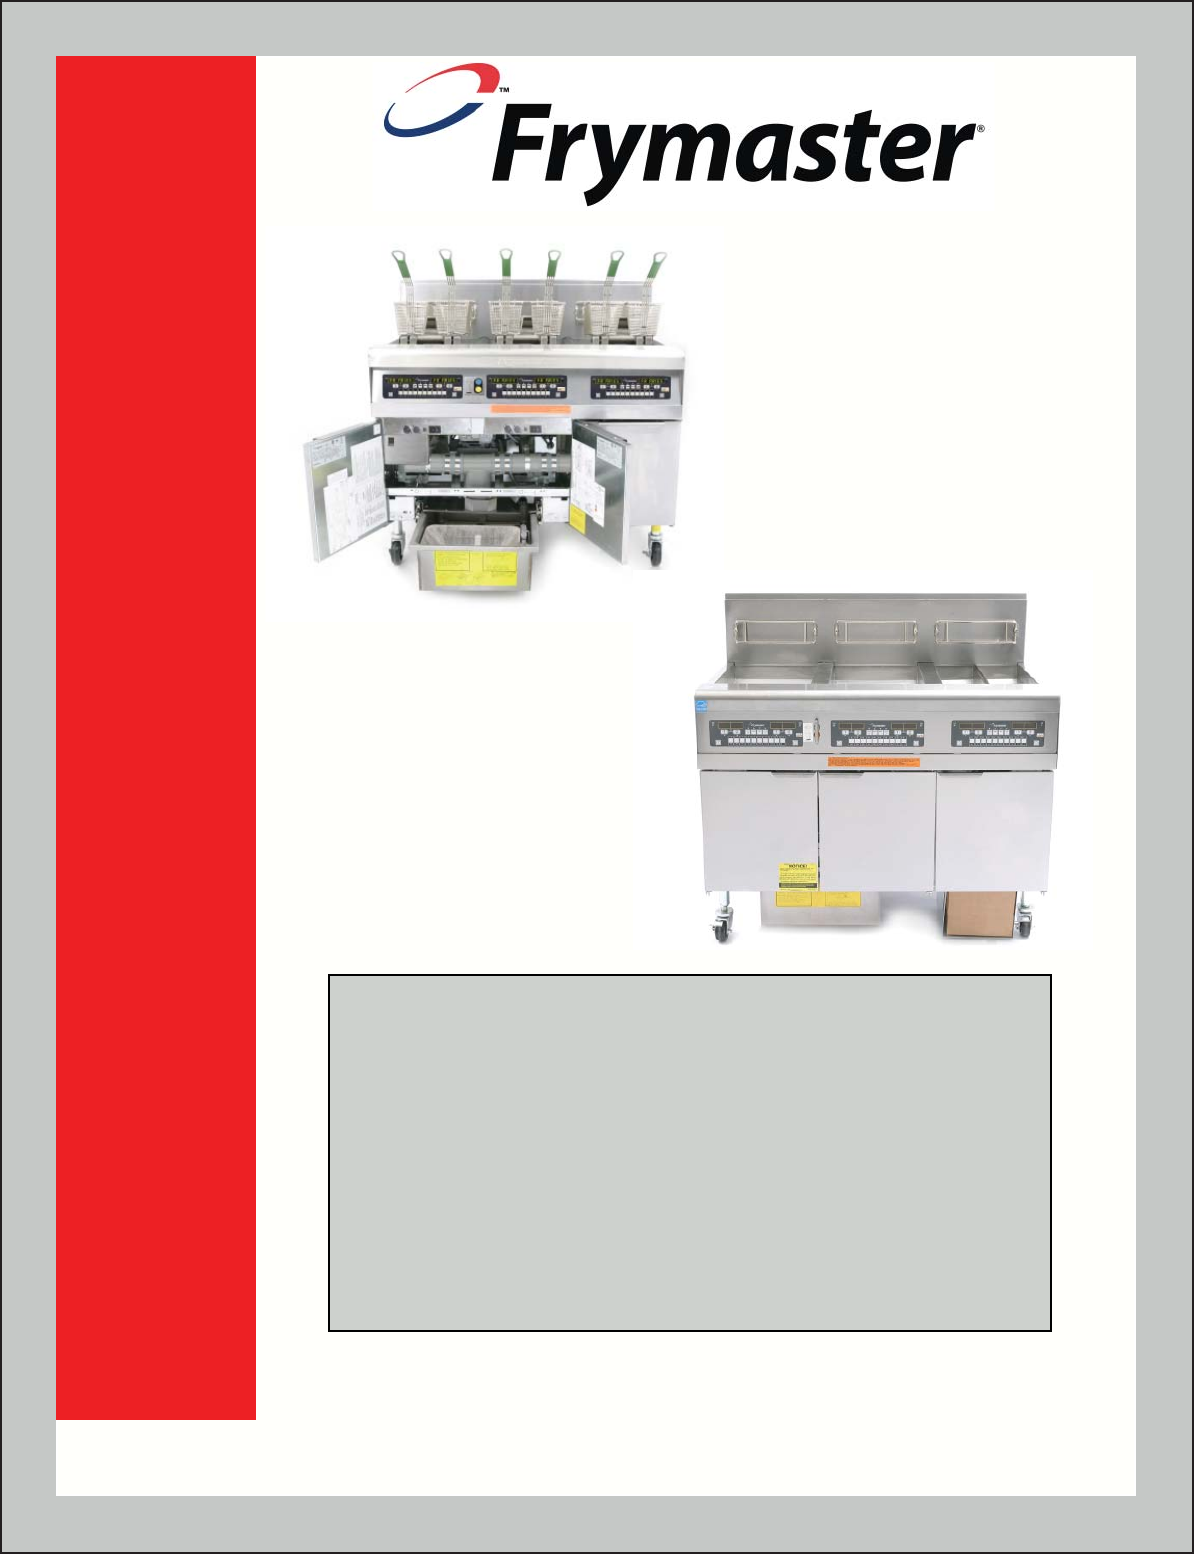 Frymaster Wiring Diagram Free Download Three Phase Hobart Fryer M3000 User Guide Manualsonline Com Along With Color Standards As Well